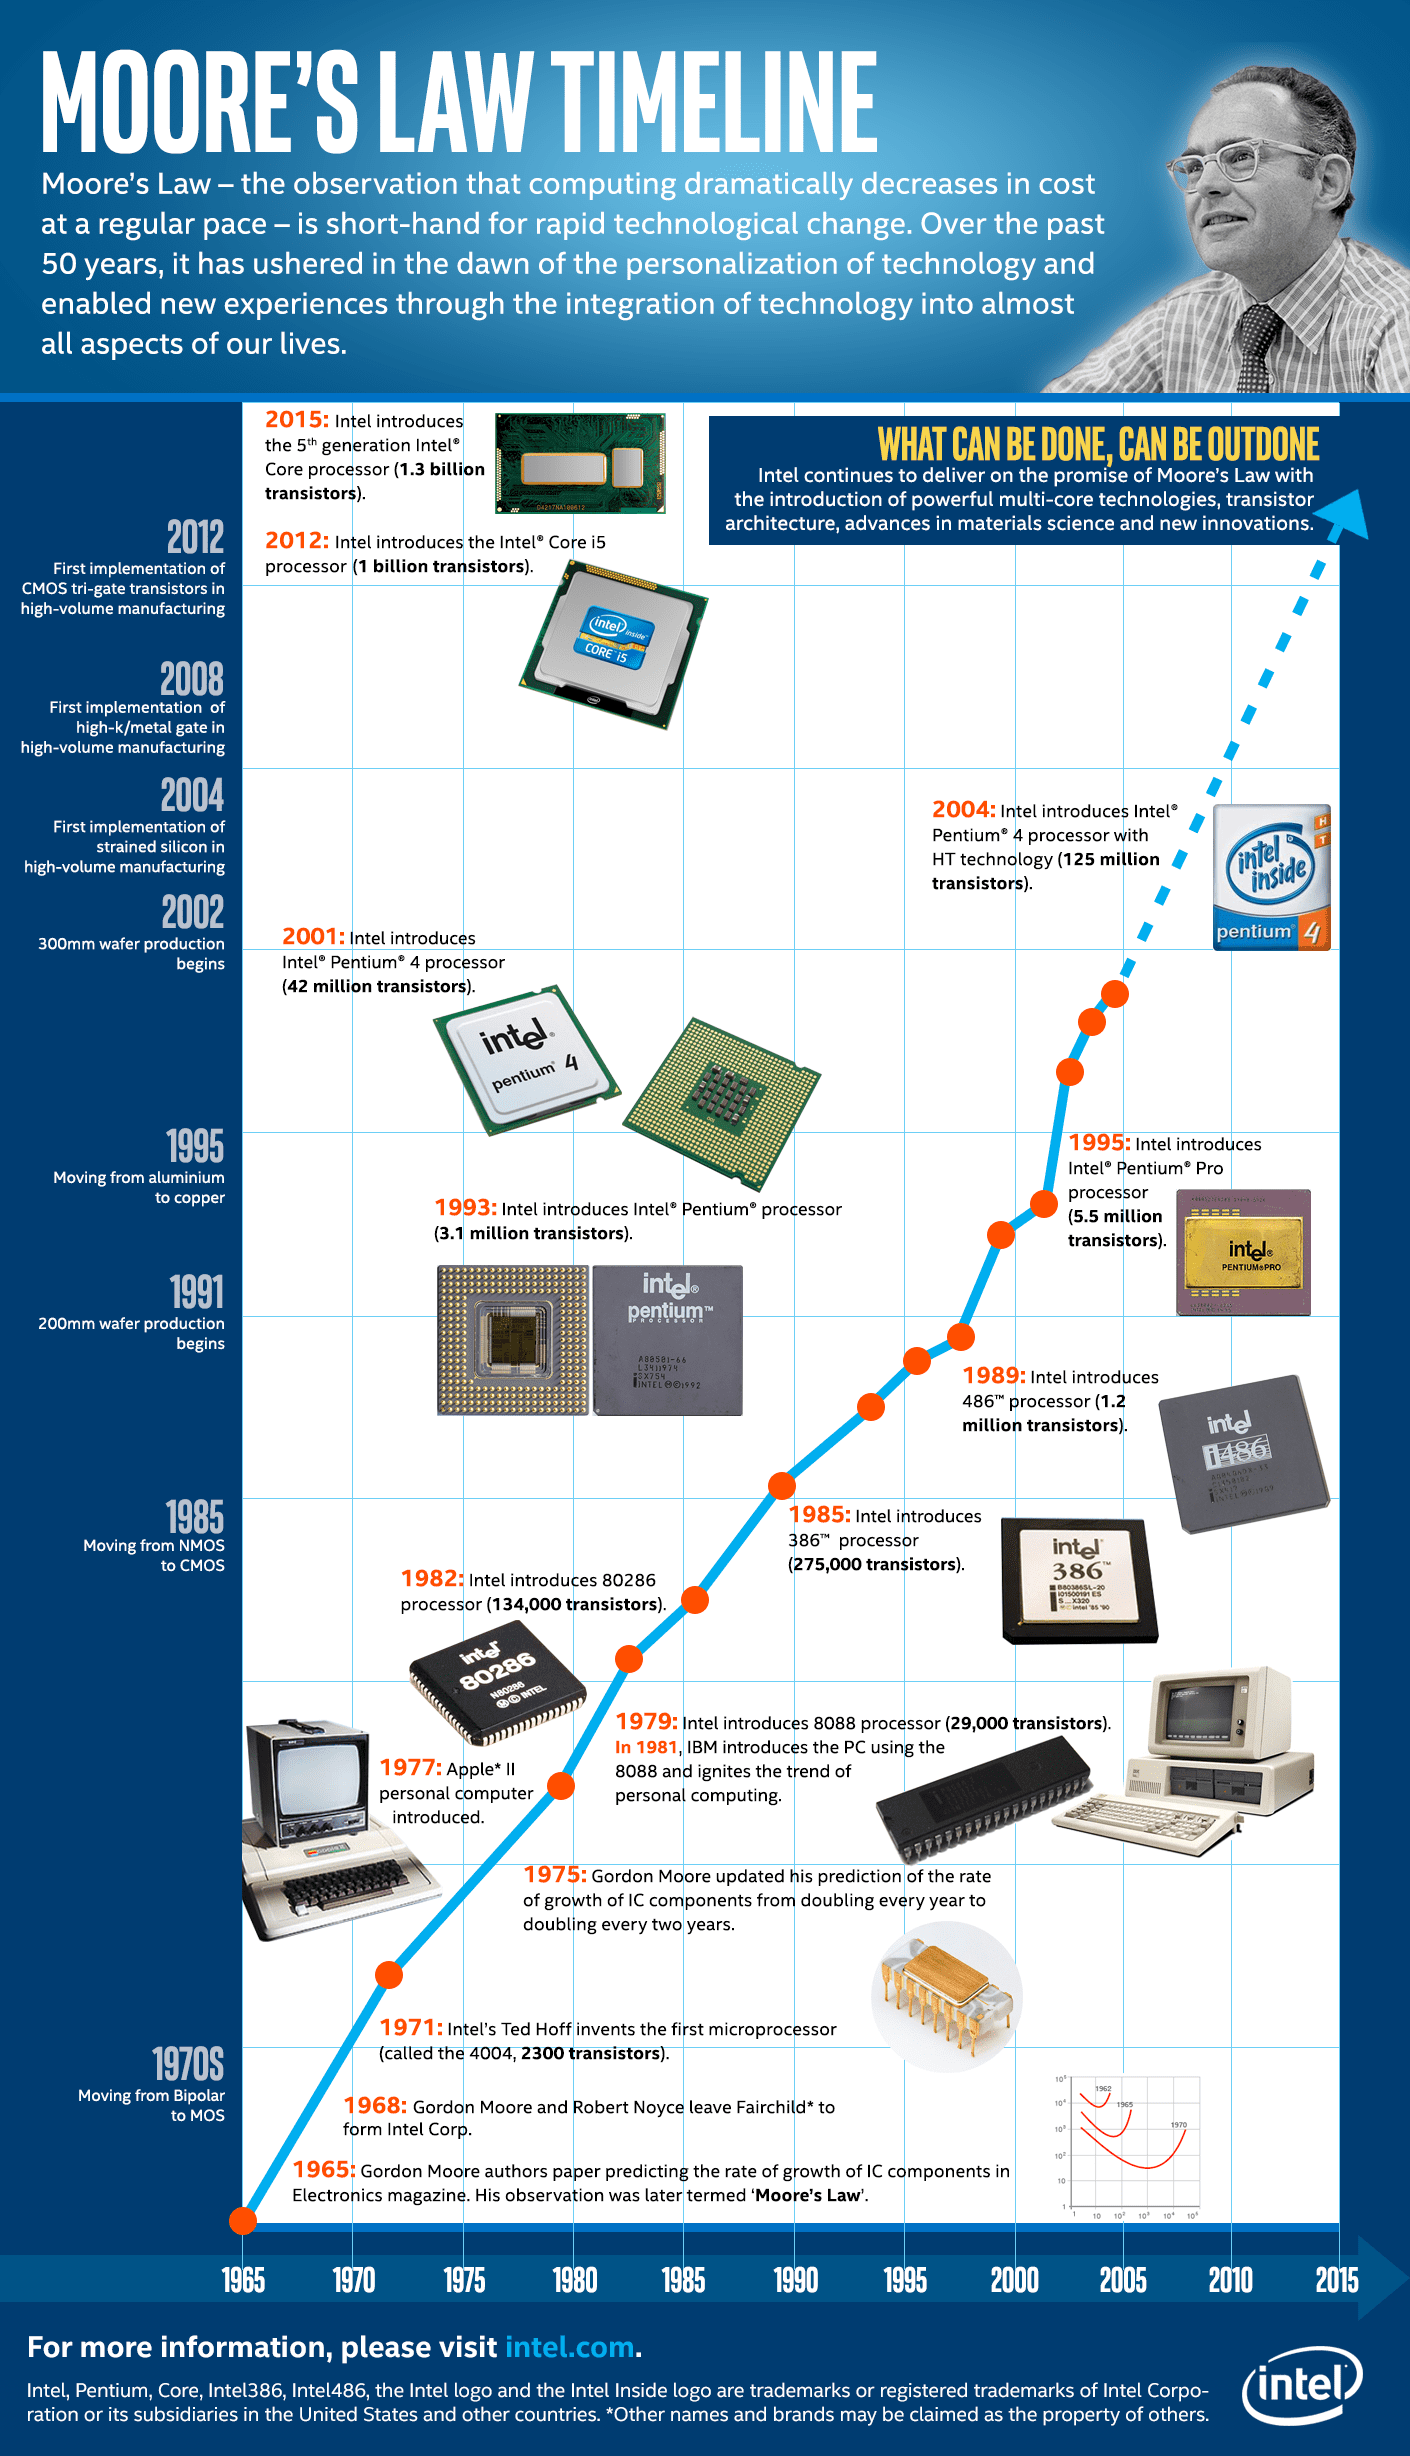 Moore's law timeline